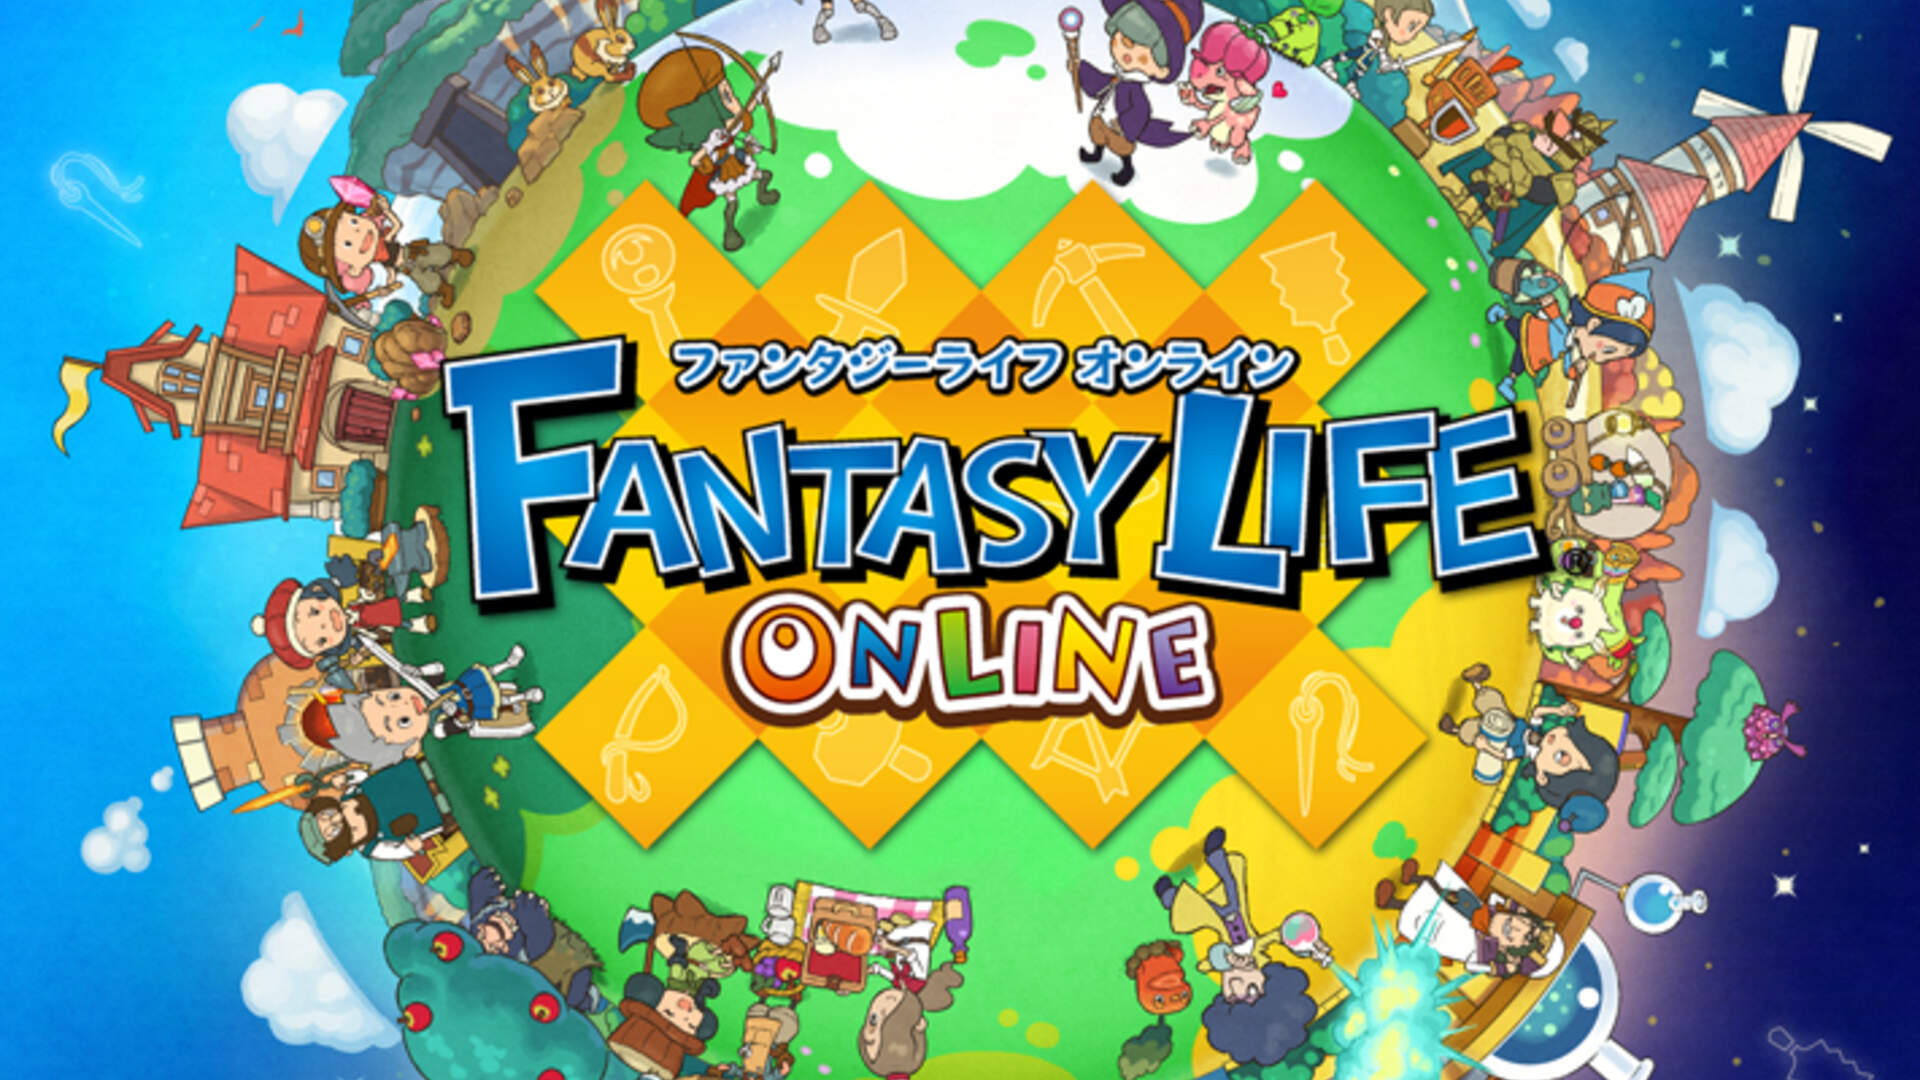 Fantasy Life Online Gets New Trailer and Summer 2018 Release Window